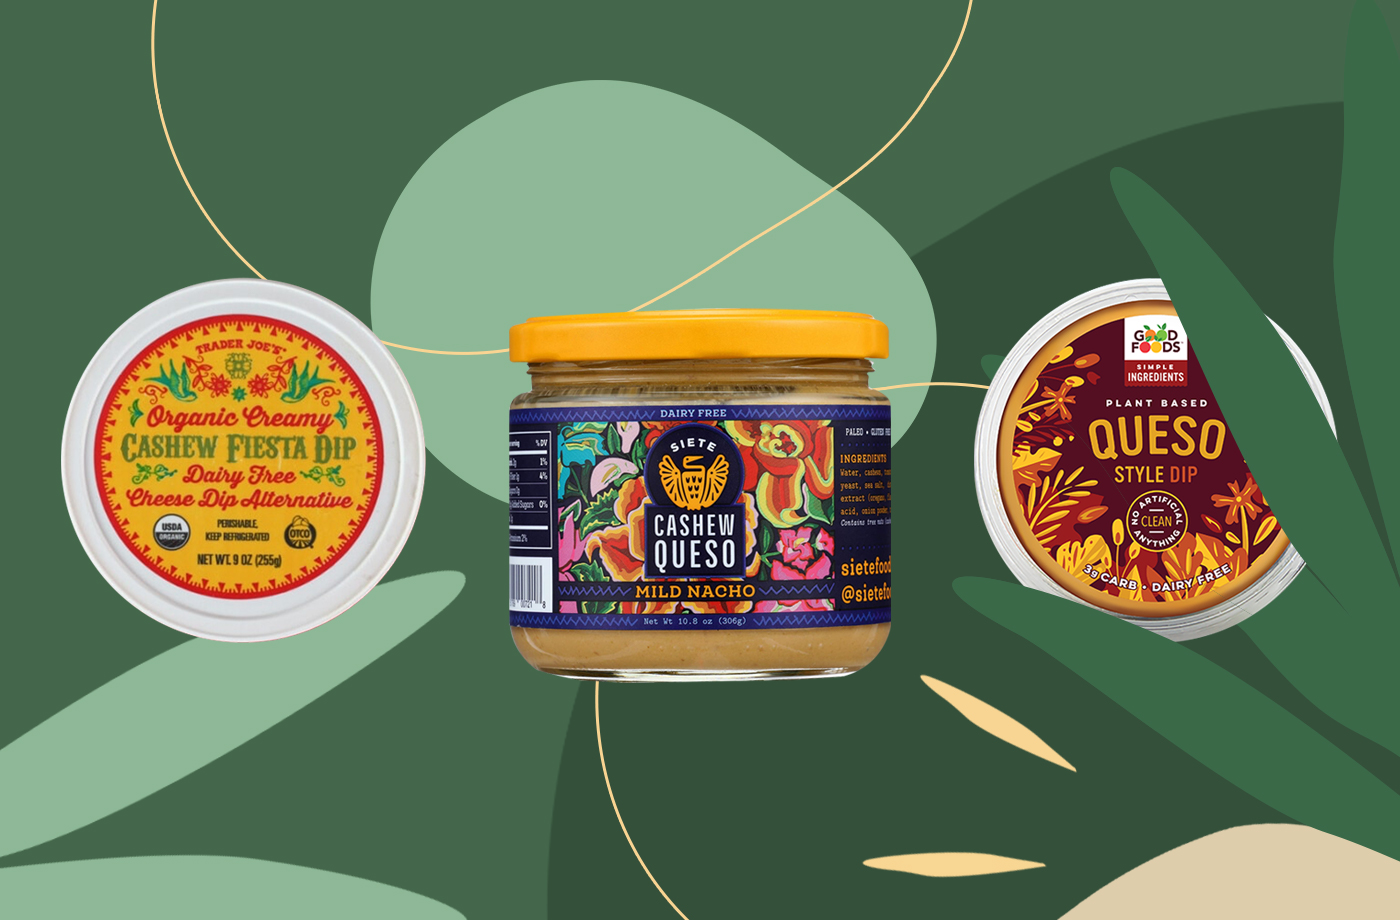 Thumbnail for Plant-Based Queso Is About to Be Your New Favorite Dip